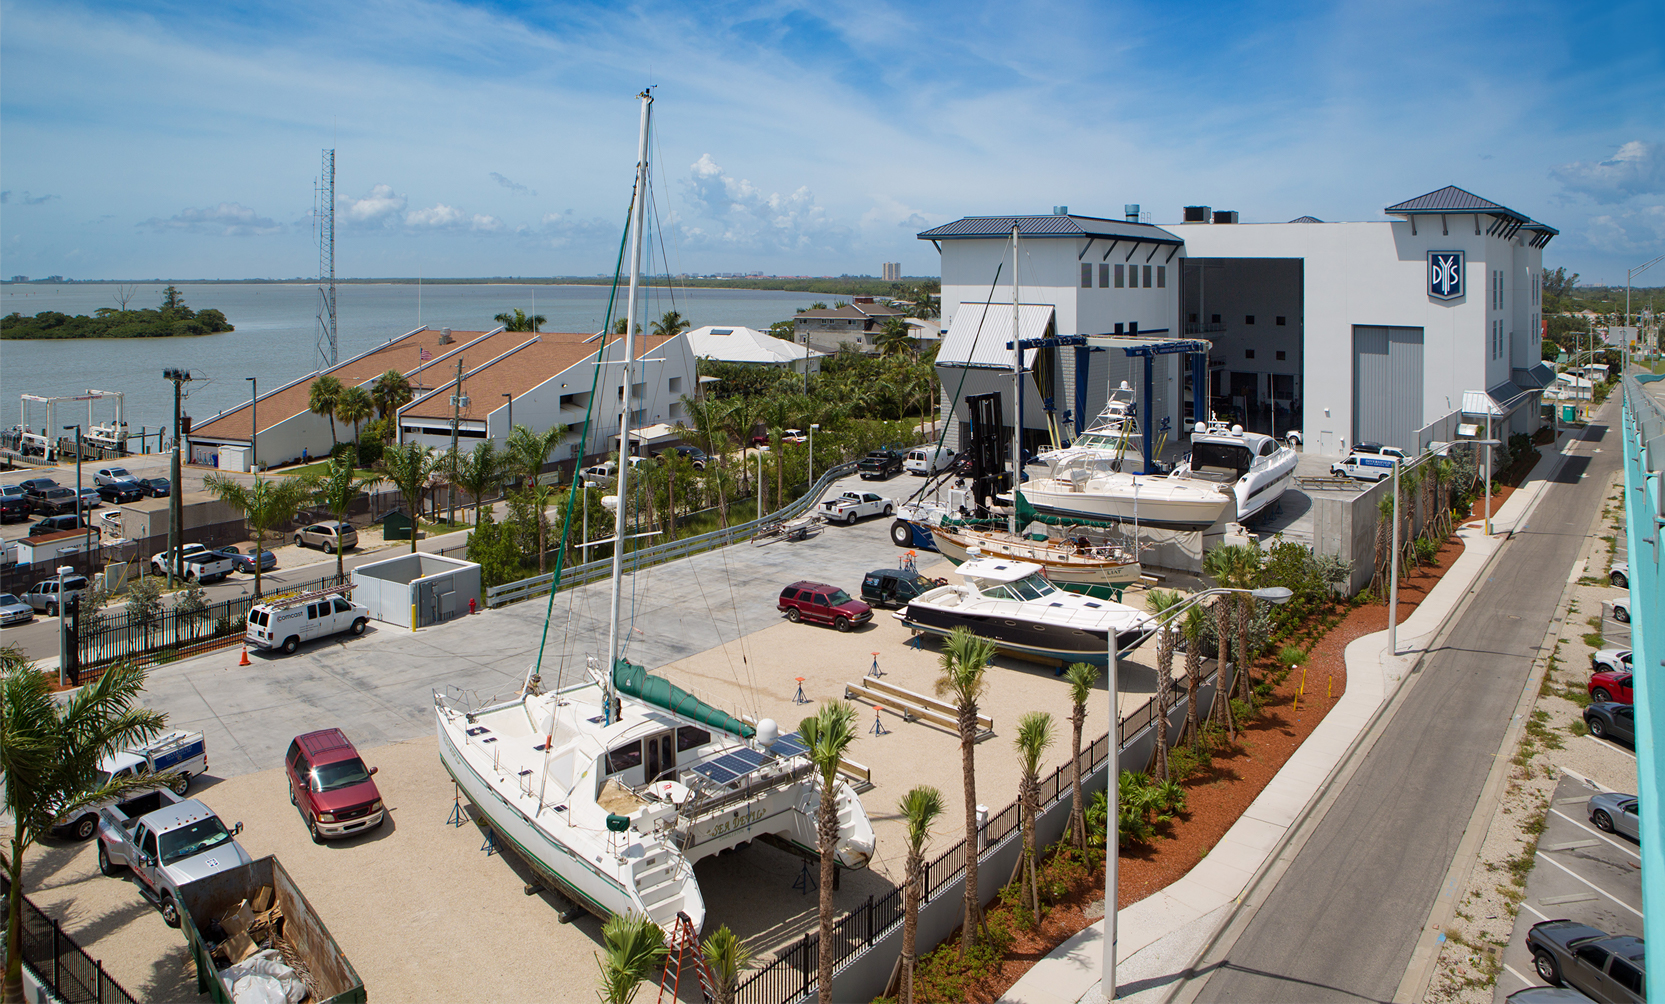 Diversified Yacht Services is located in Ft. Myers, Florida.